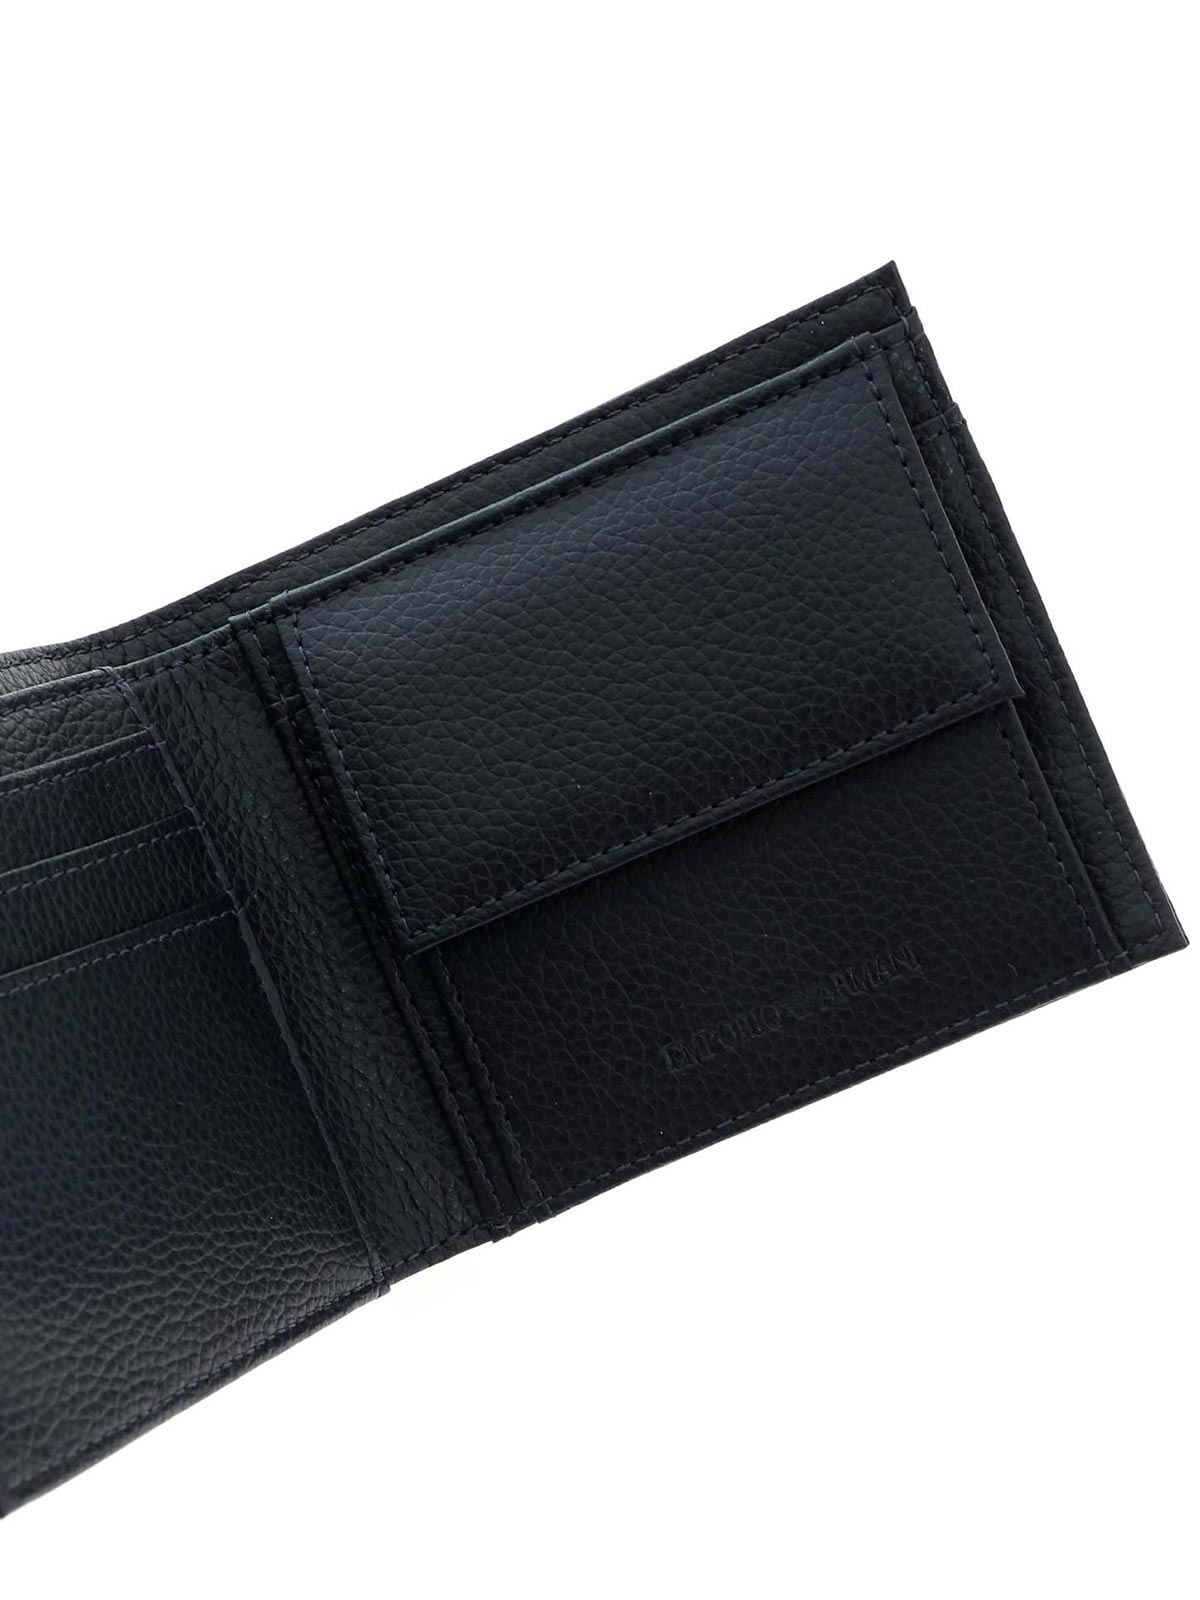 Picture of EMPORIO ARMANI | Men's Leather Wallet with Coin Purse